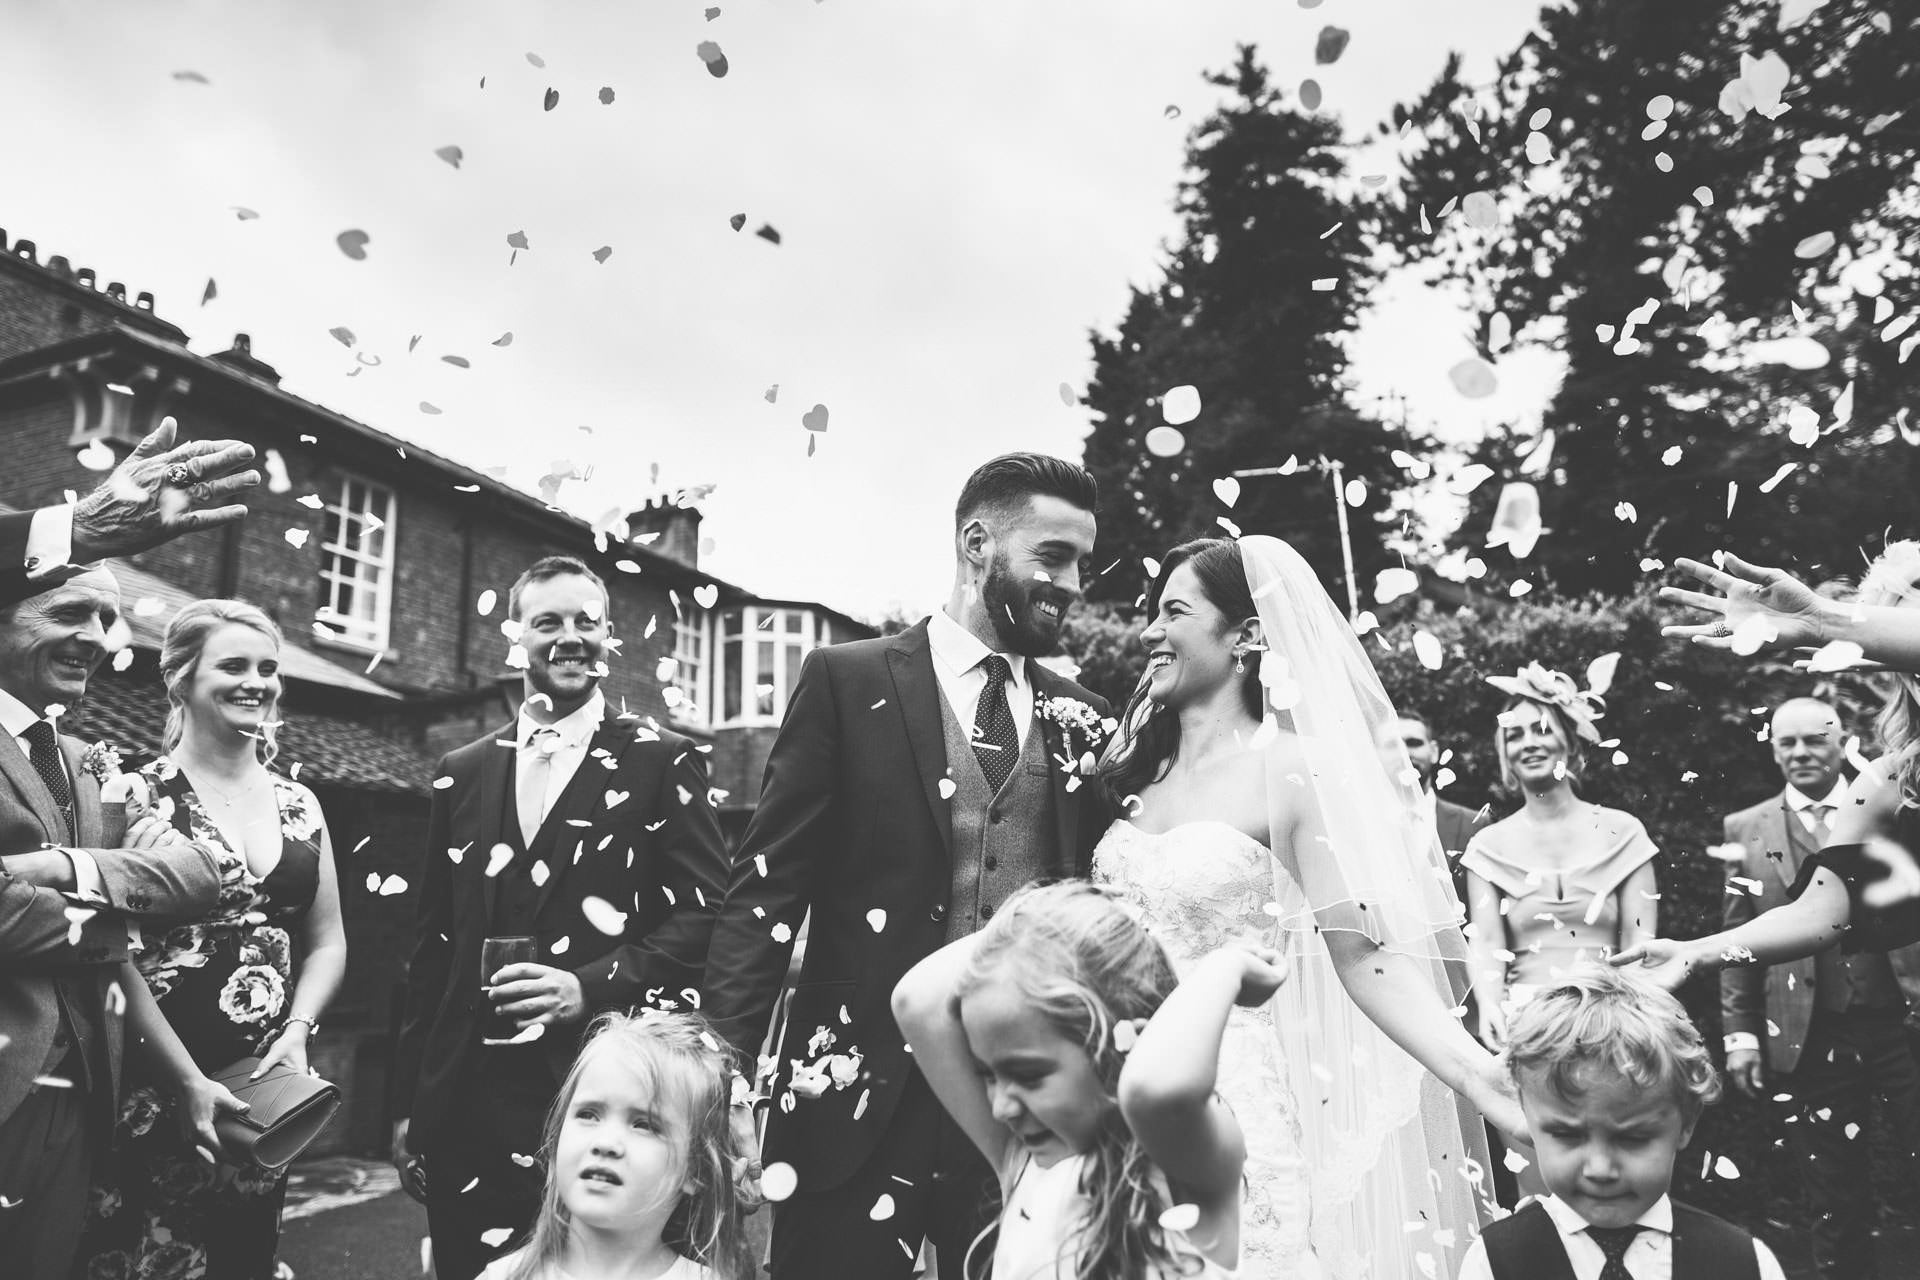 Best wedding photography 2016 - black and white confetti shot